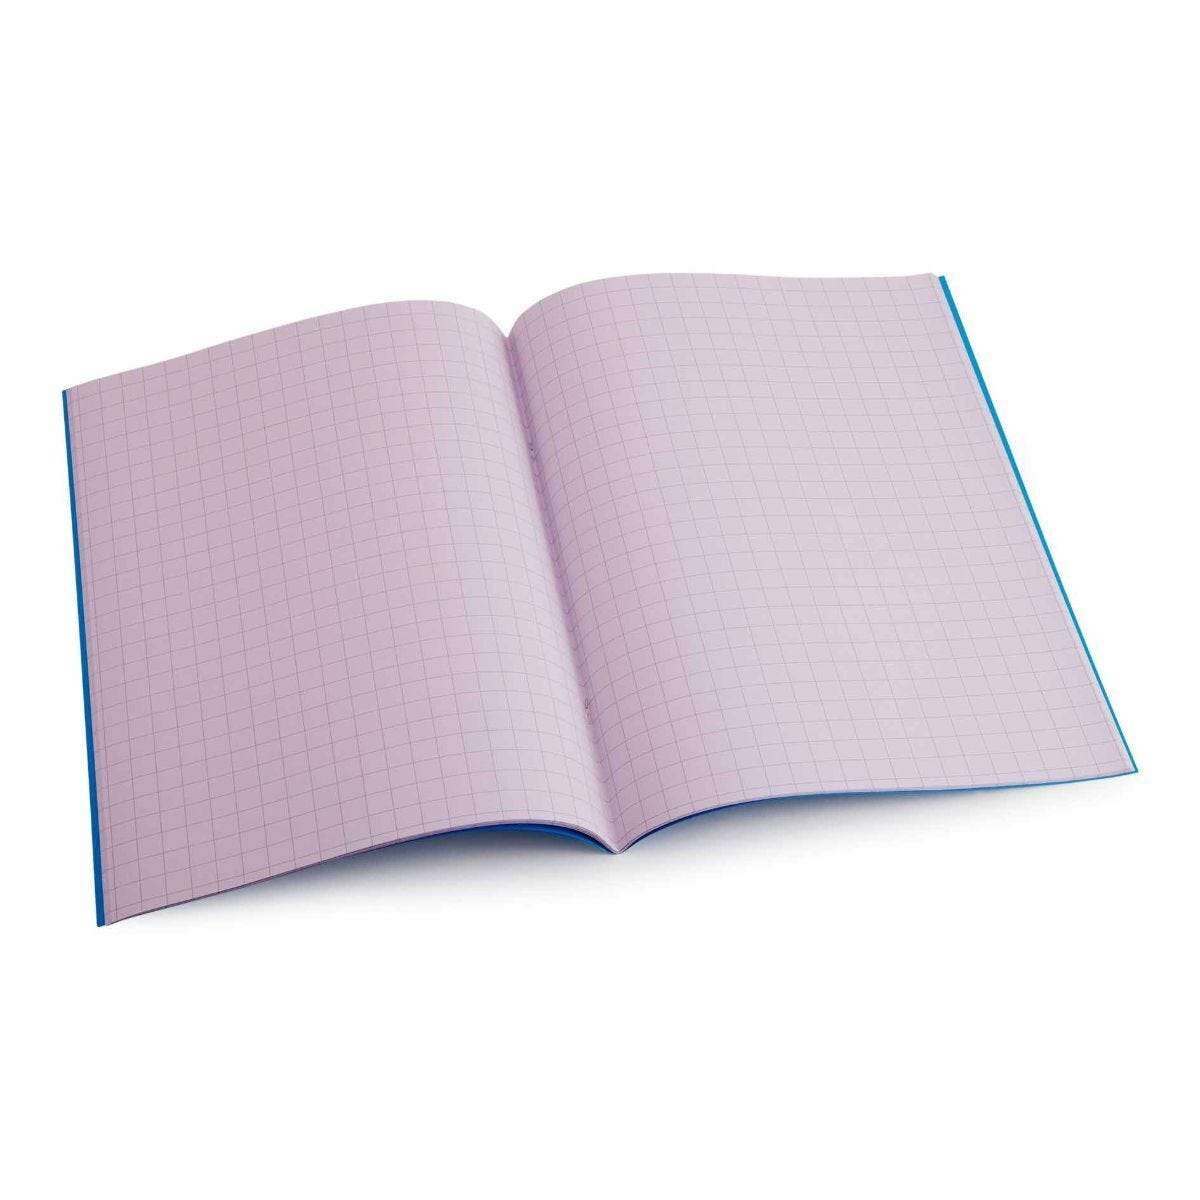 Tinted Exercise Books Squared A4 10mm Purple